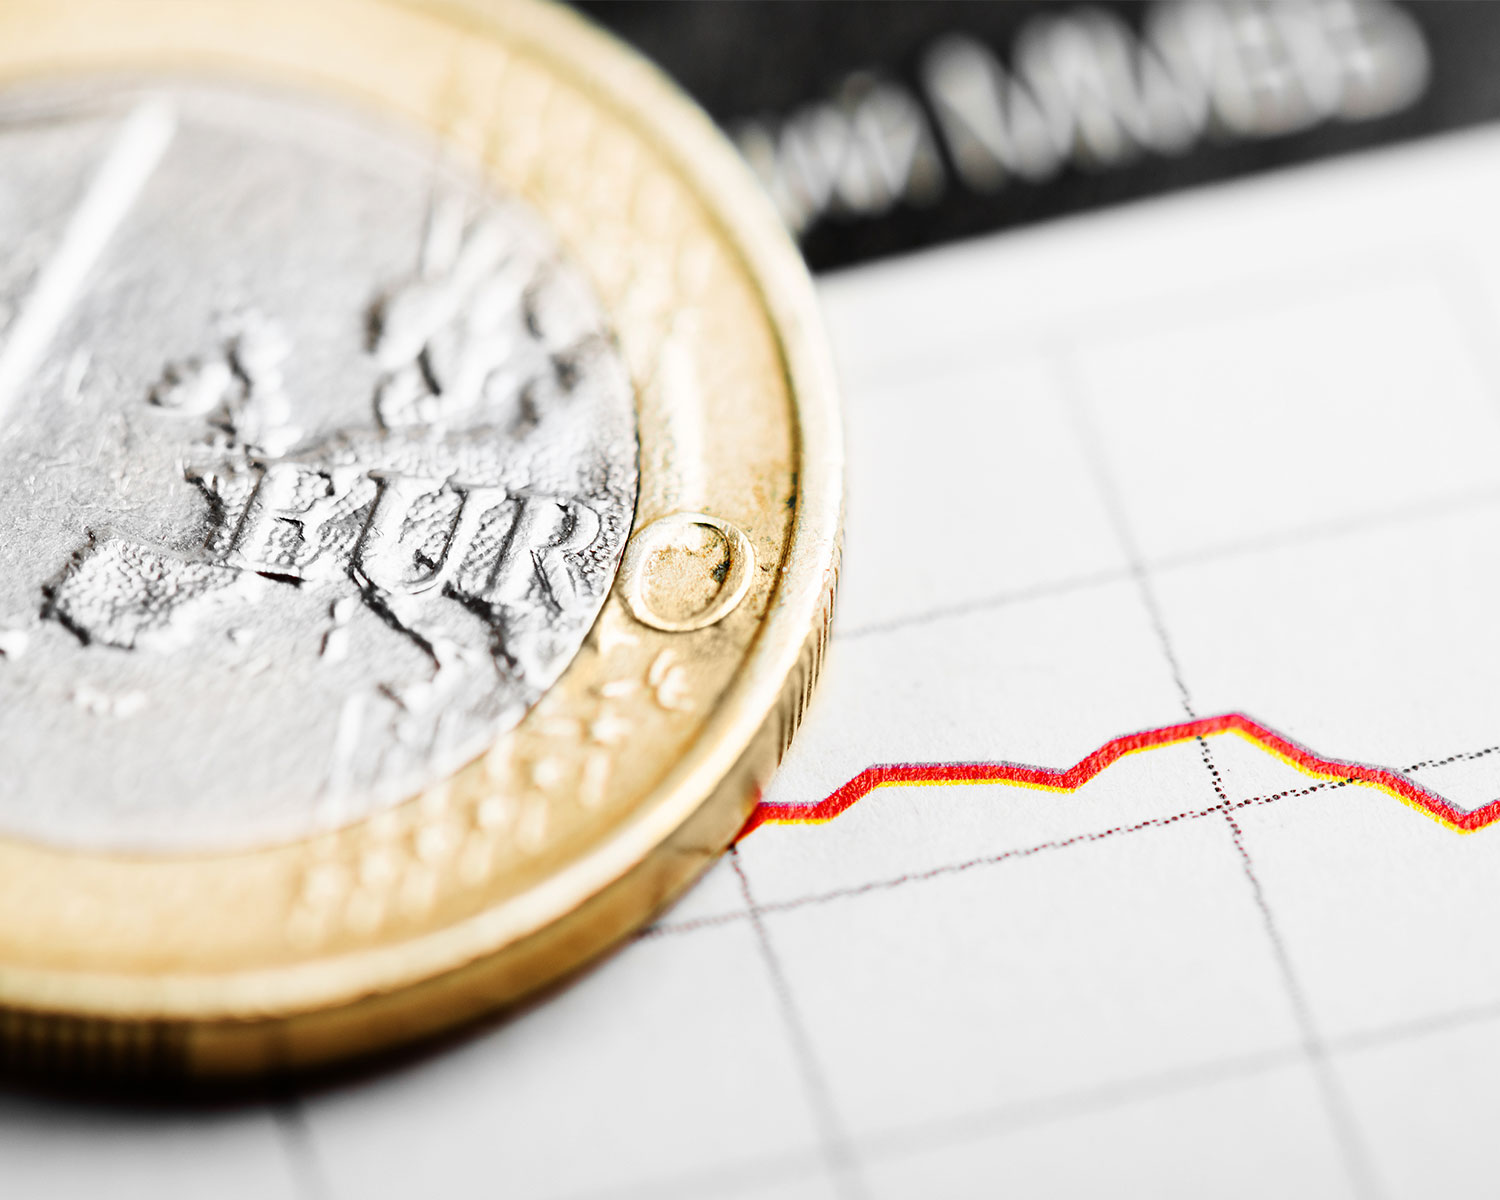 One euro coin on fluctuating graph